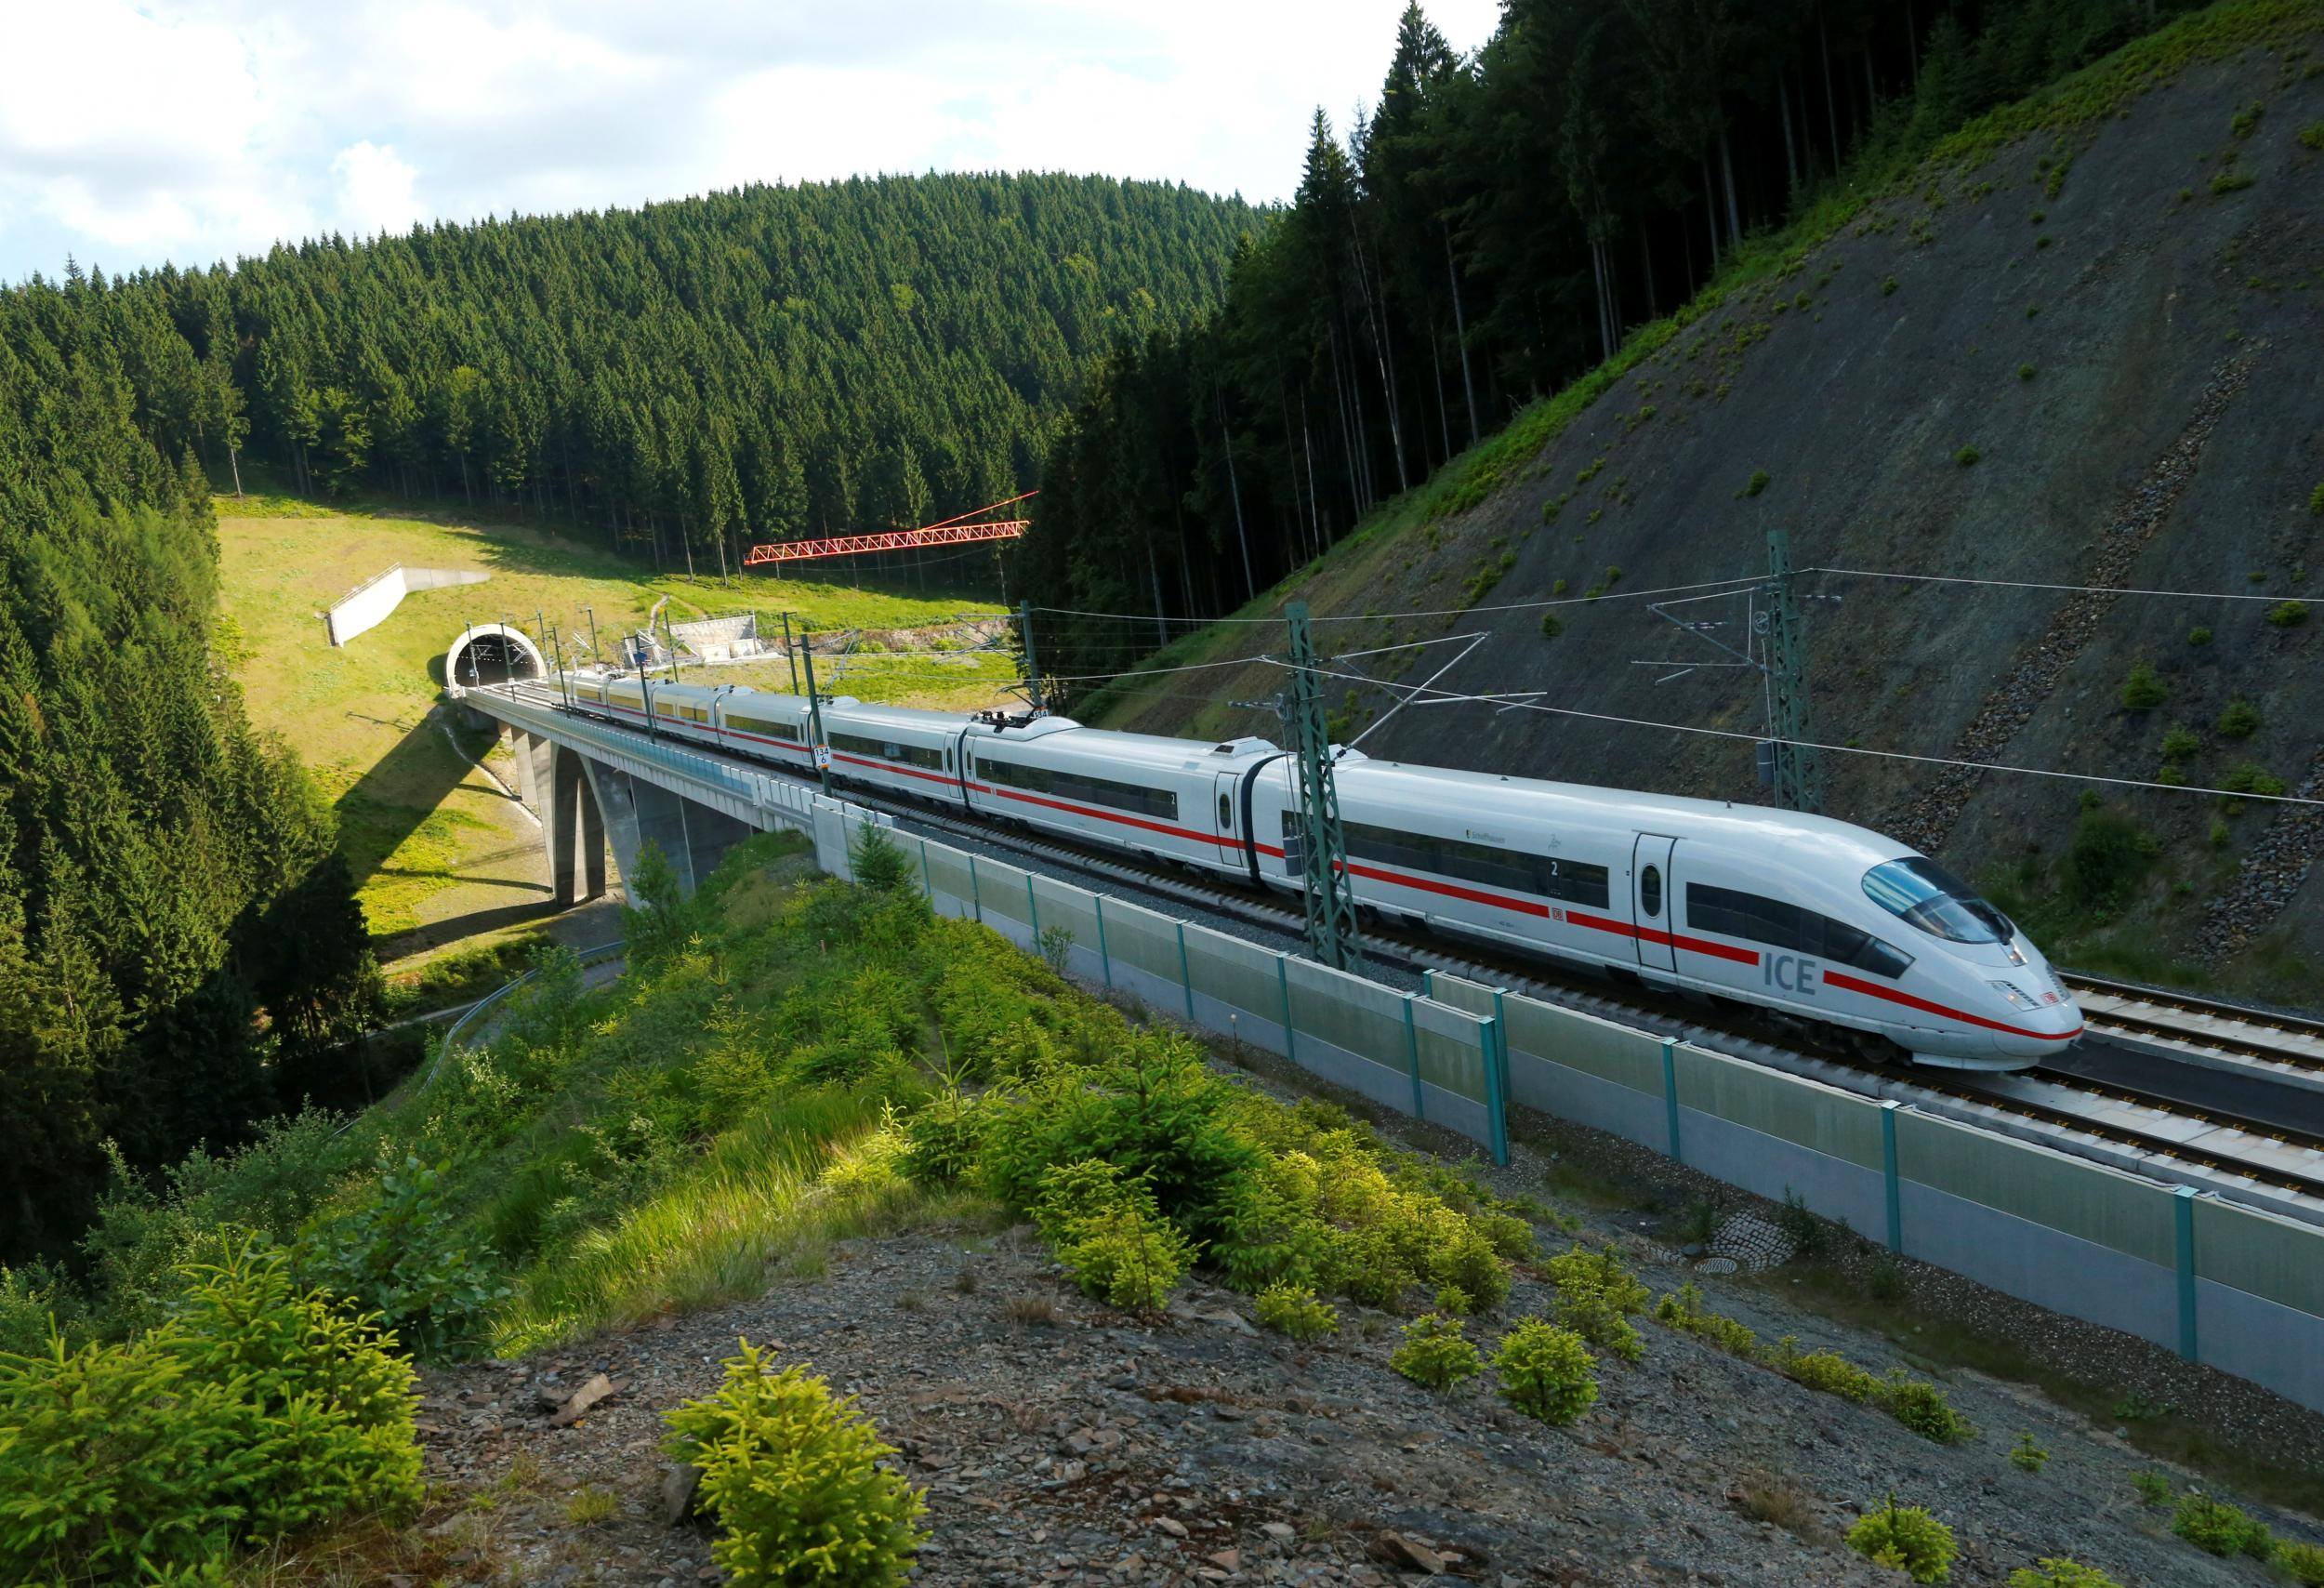 Plans for UK-Germany high speed rail services shelved due to 'significantly changed economic environment'